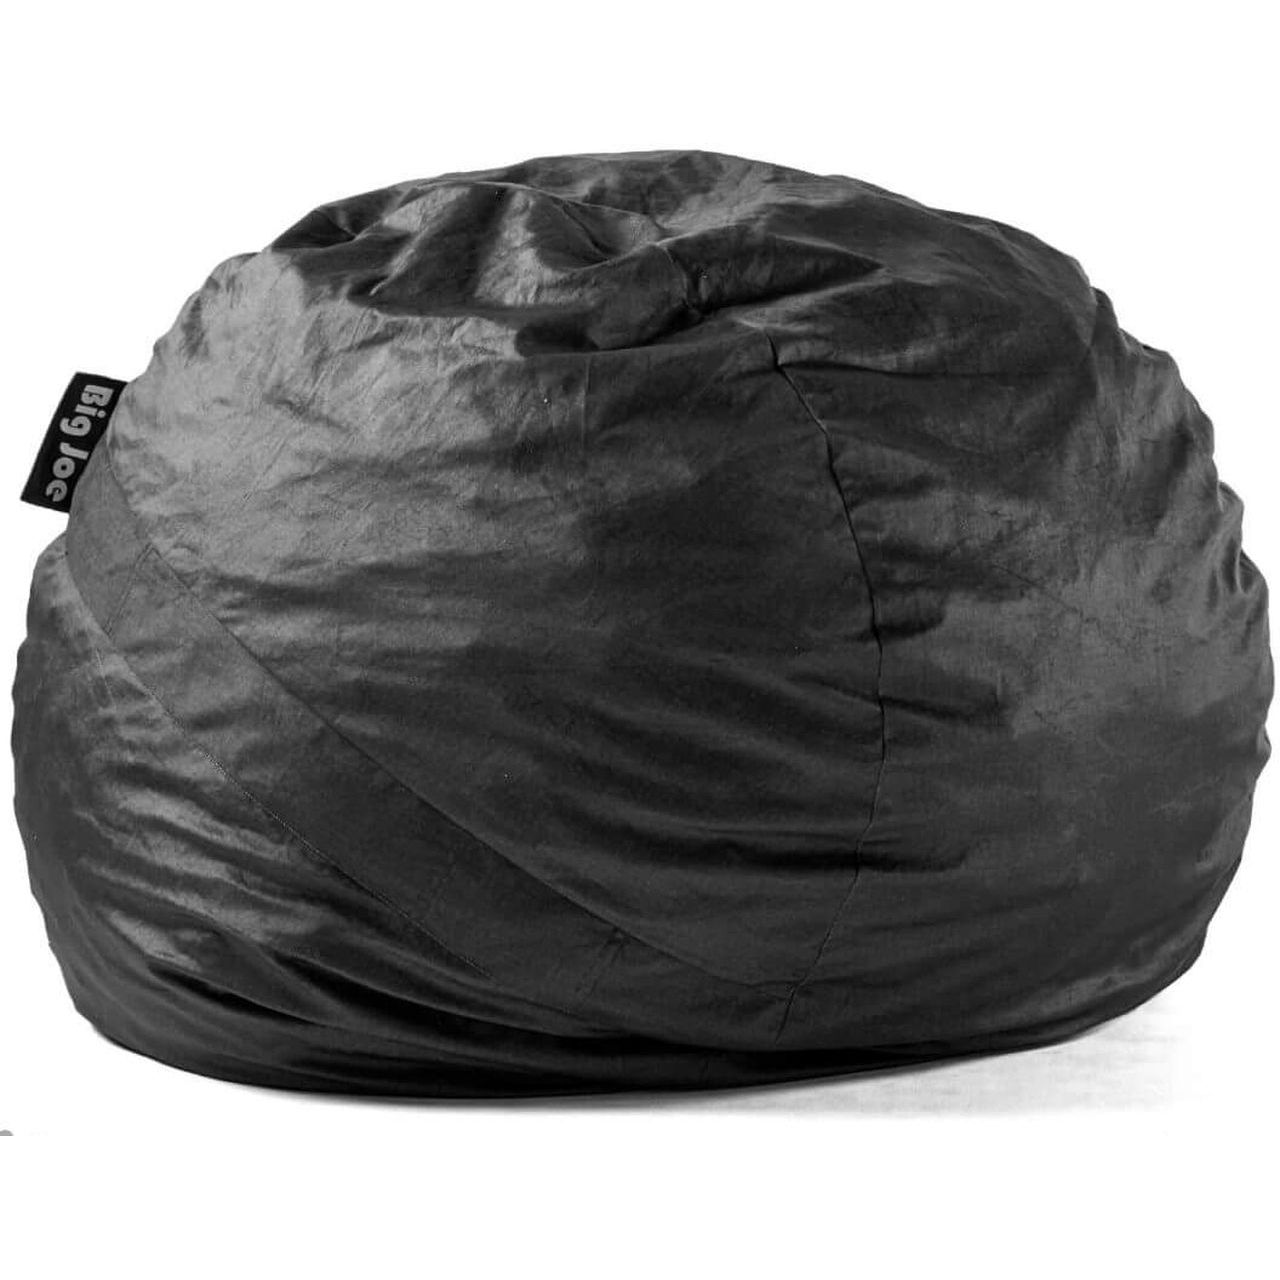 Big Joe Fuf Large Bean Bag Cover Only - Black Lenox